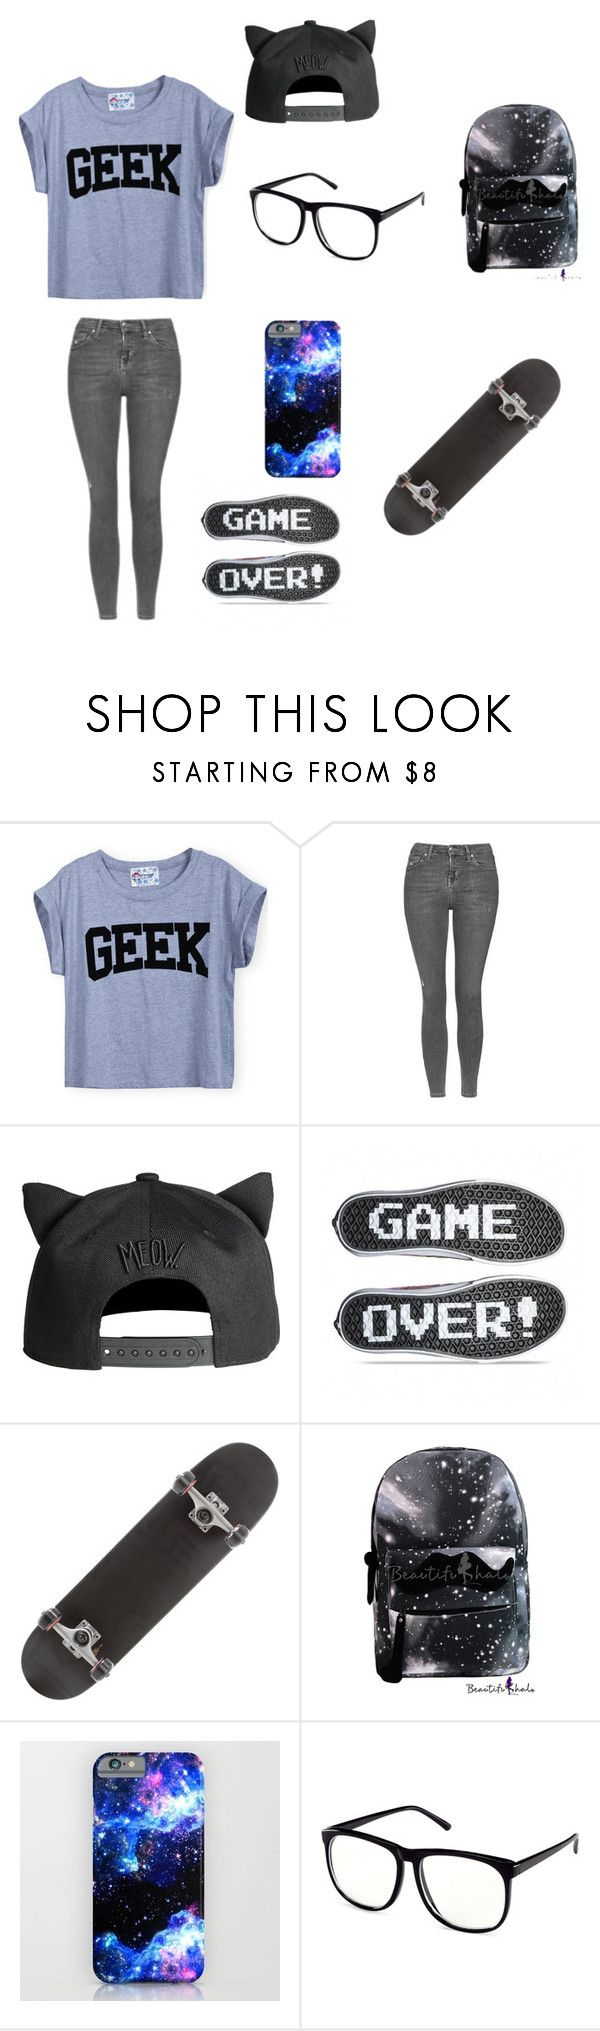 """Untitled #32"" by darksoul7 on Polyvore featuring Topshop and H&M"